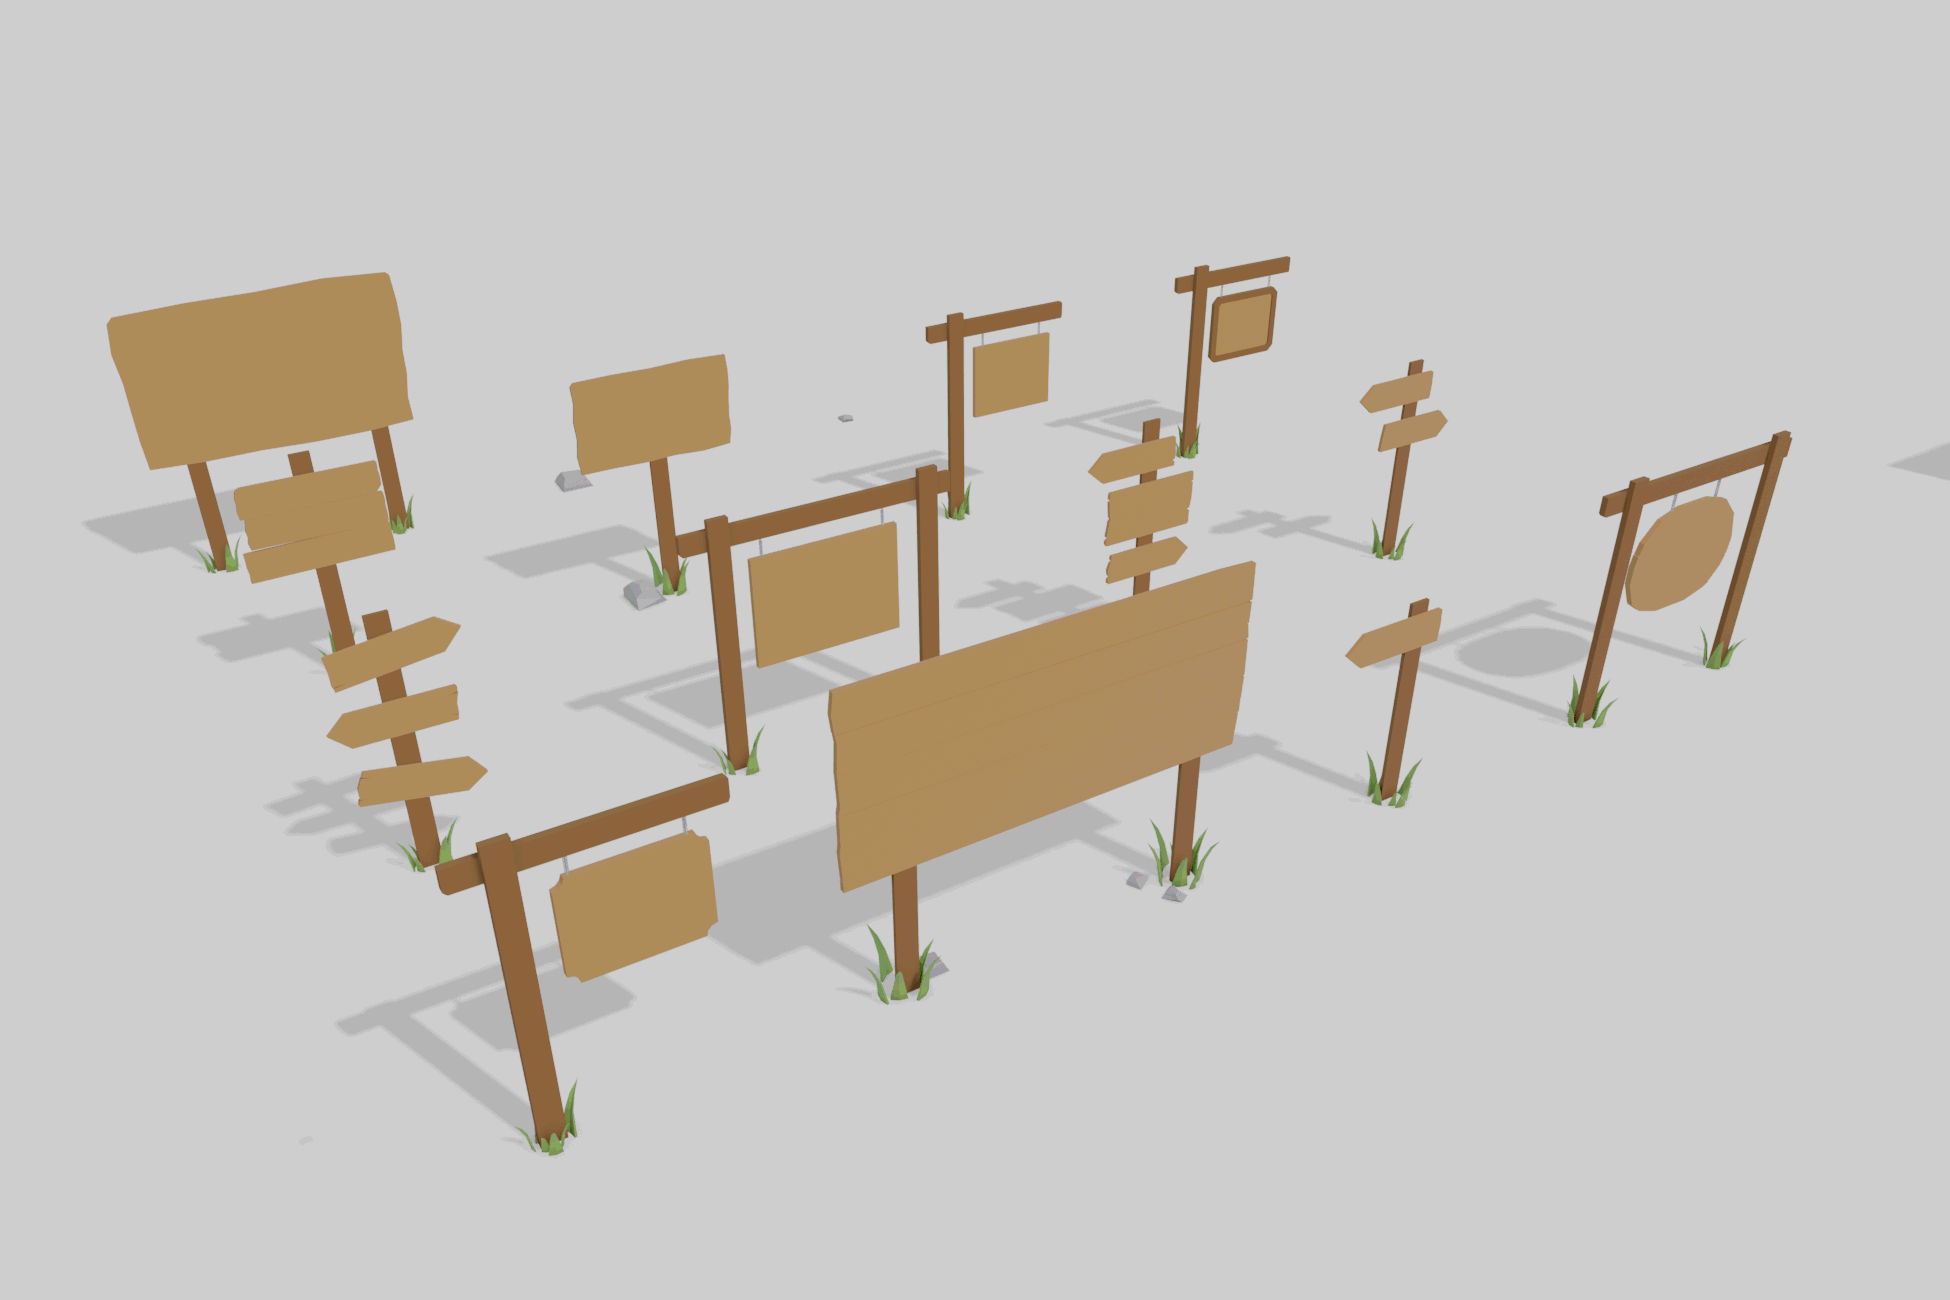 LowPoly Wood Signs